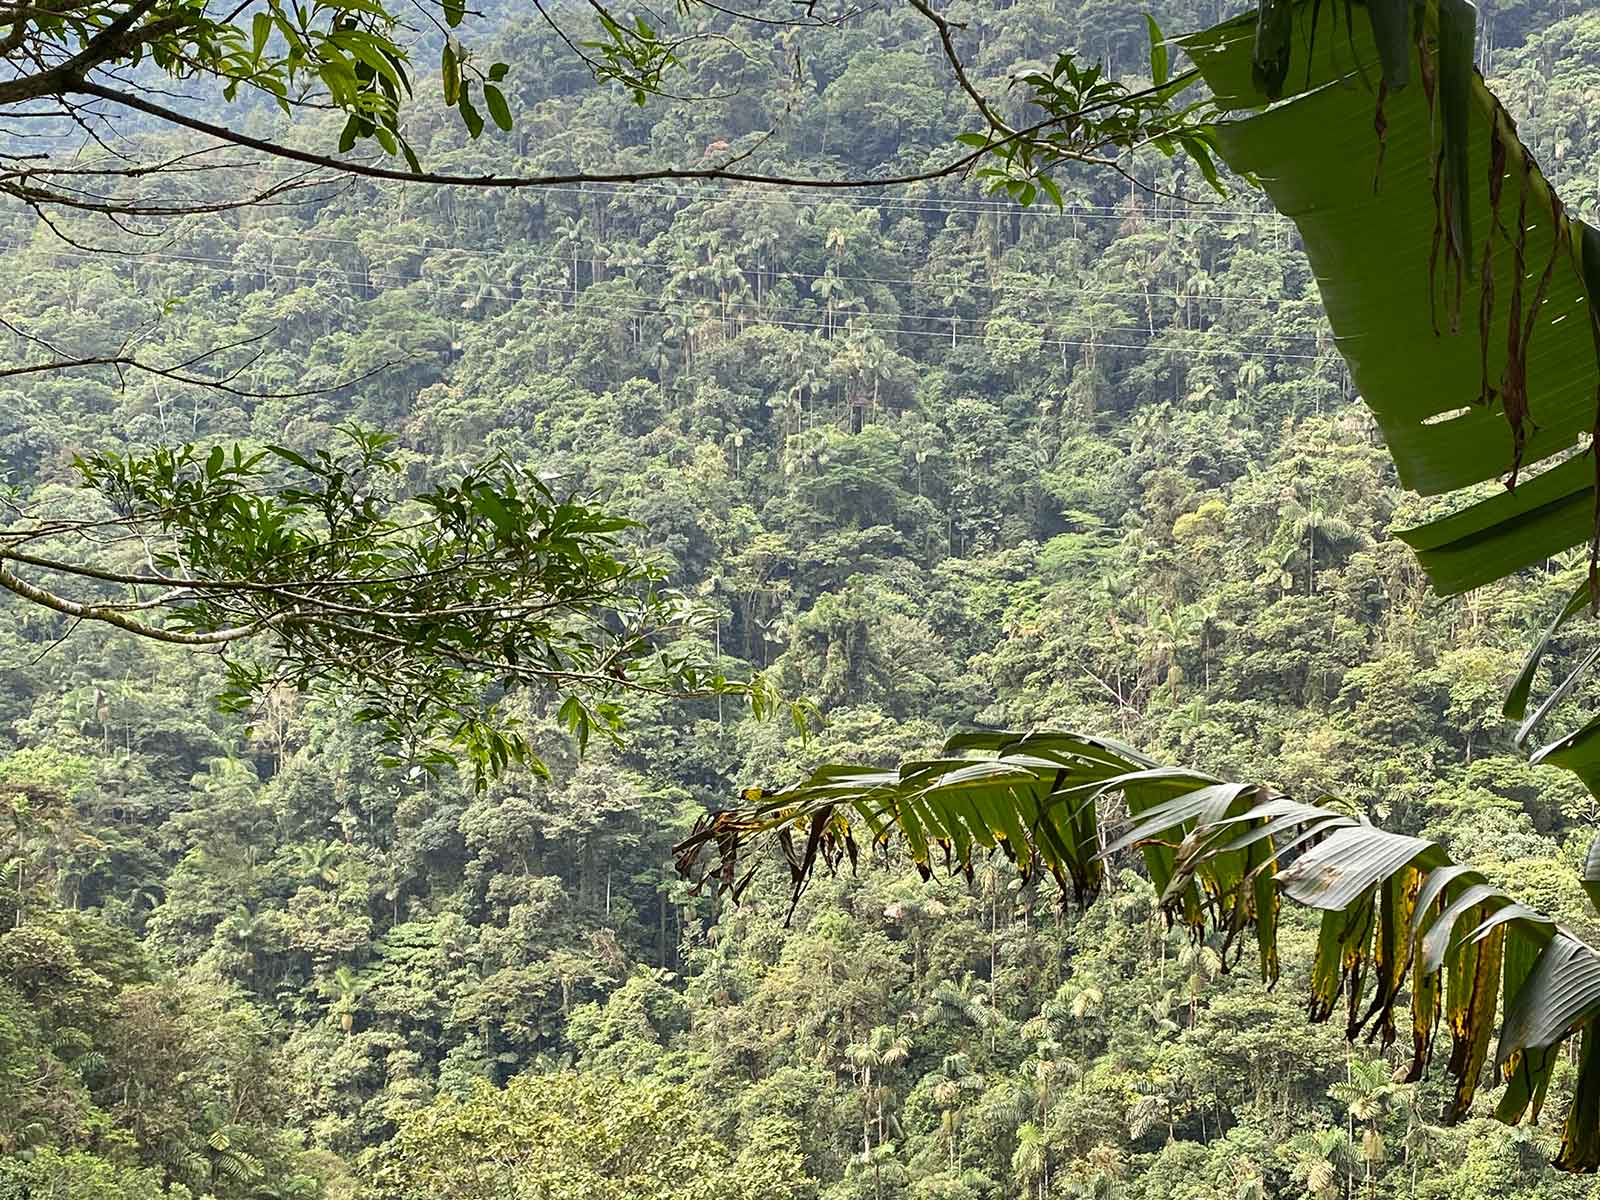 Bosque tropical. El Caraño, Caquetá.